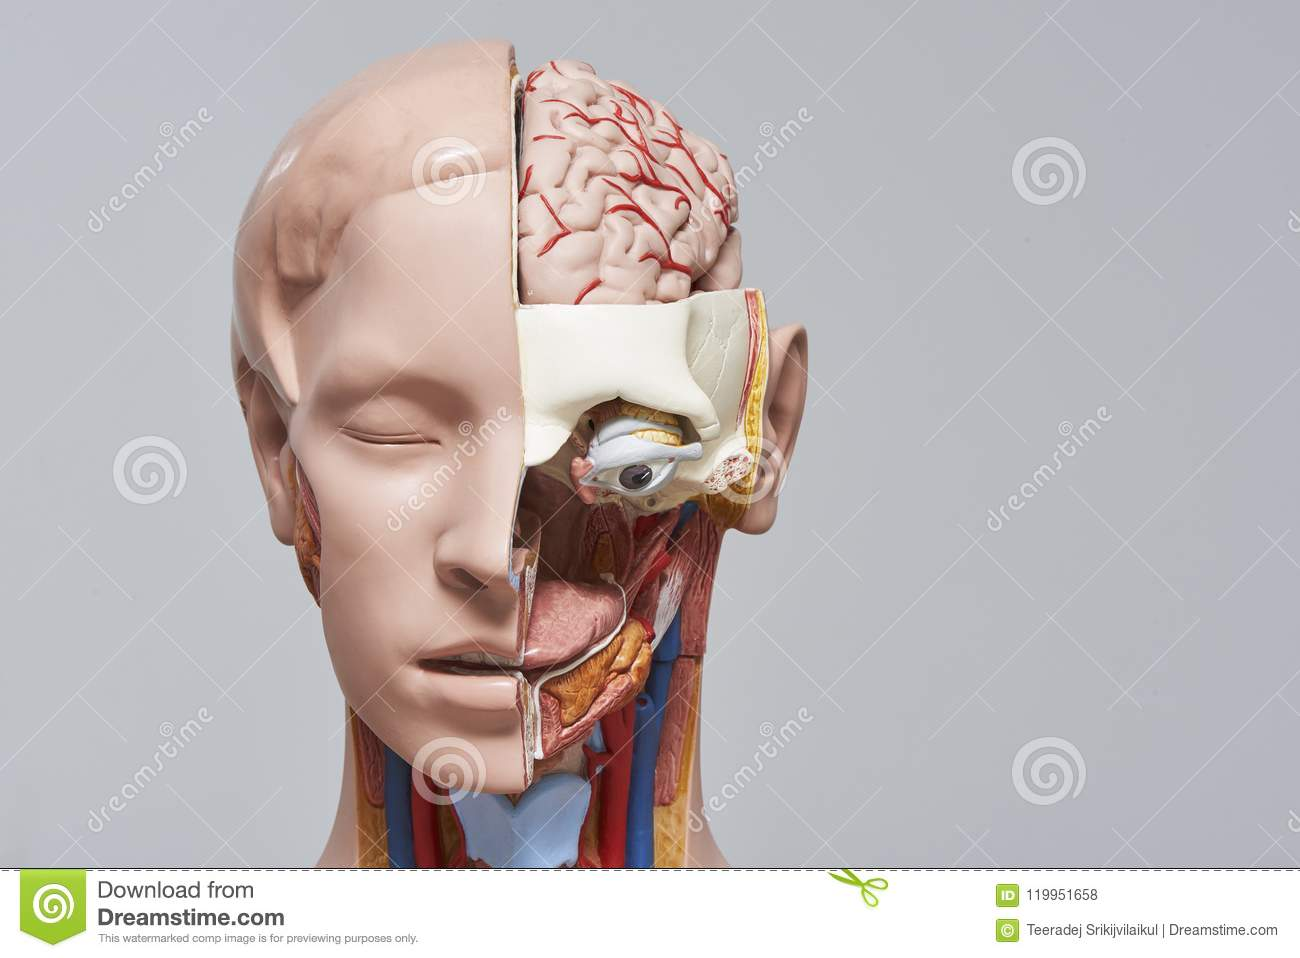 Model Of Human Head And Neck And Section Of The Organs Stock Photo